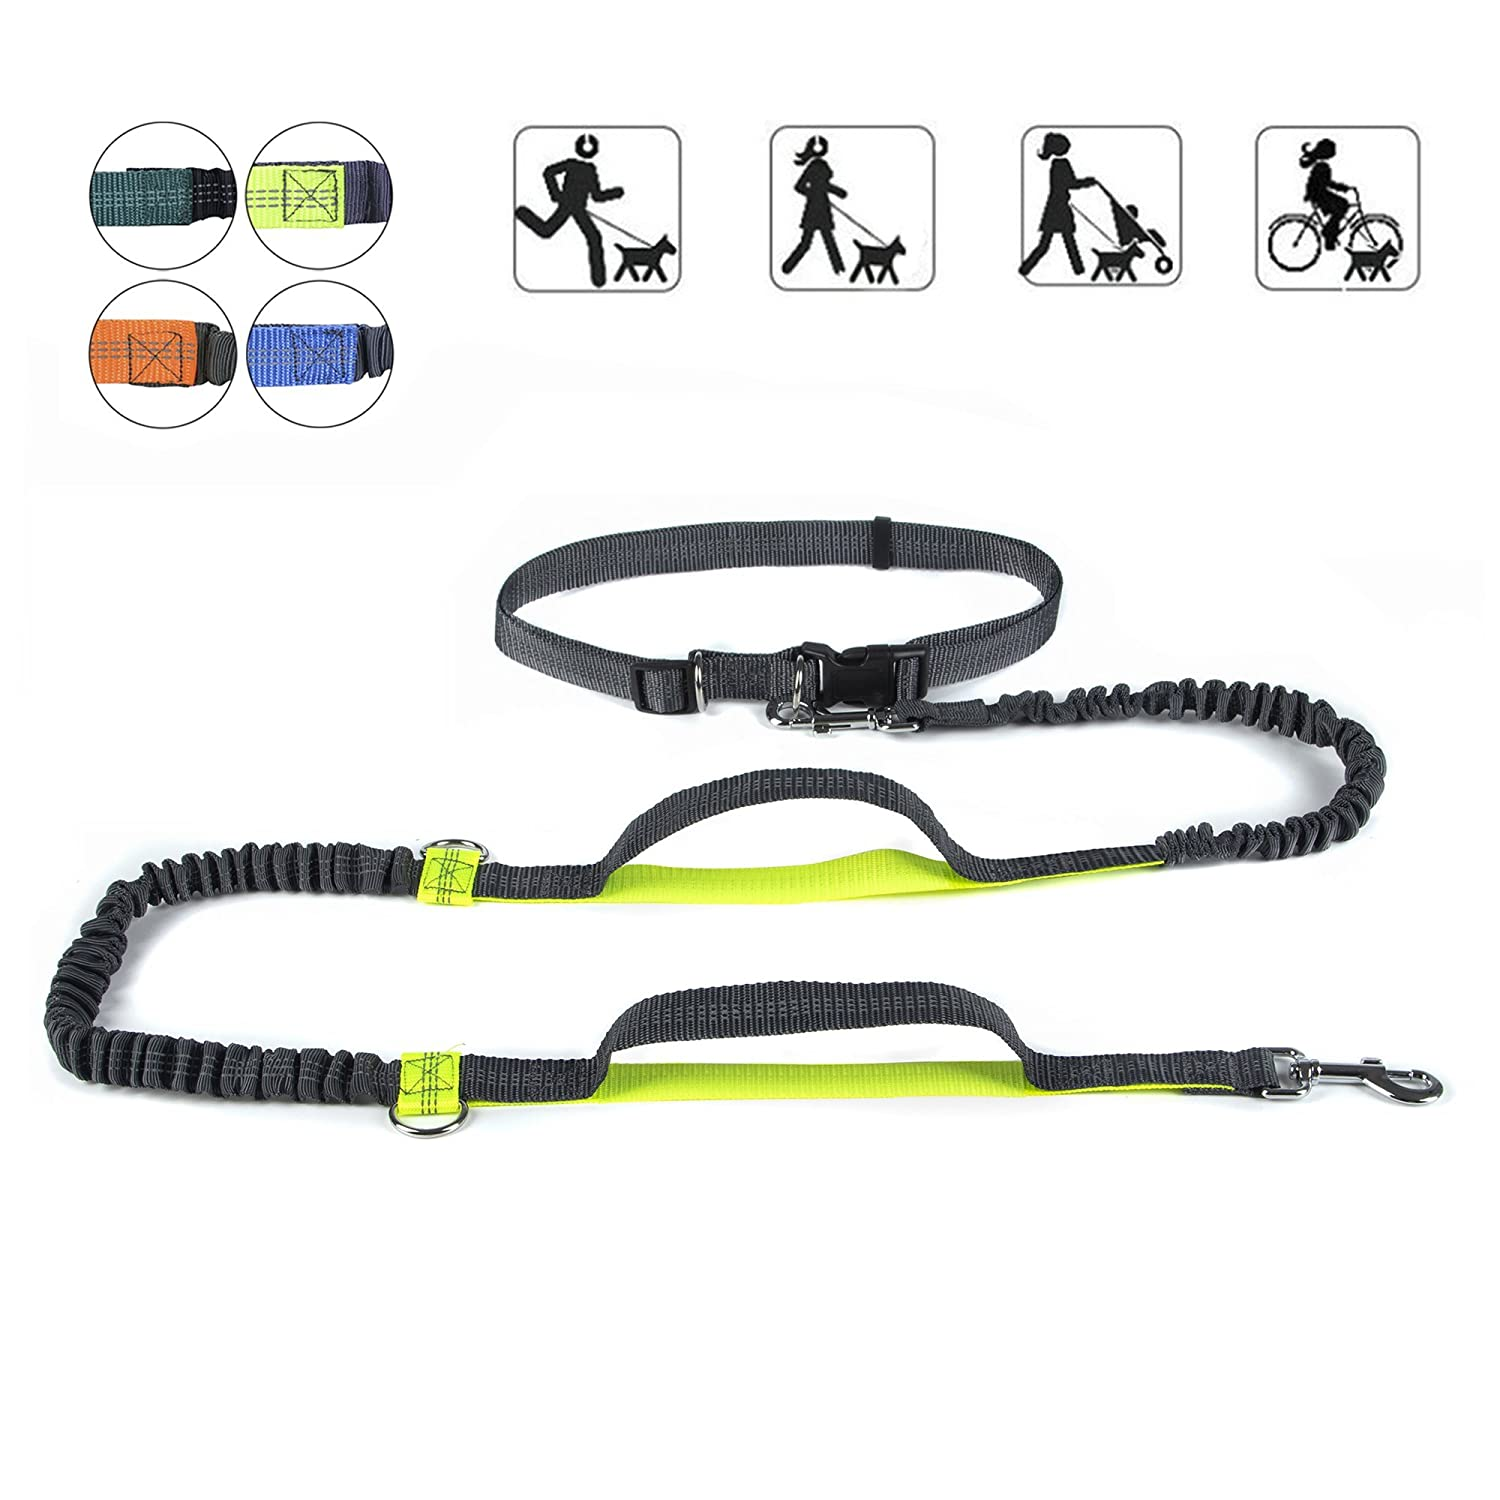 "PetforCity Hands Free Dog Running Leash Dual Handle Control Shock Absorbing Bungee Waist Wearing Adjustable Belt Fits up to 47"" YouTop"